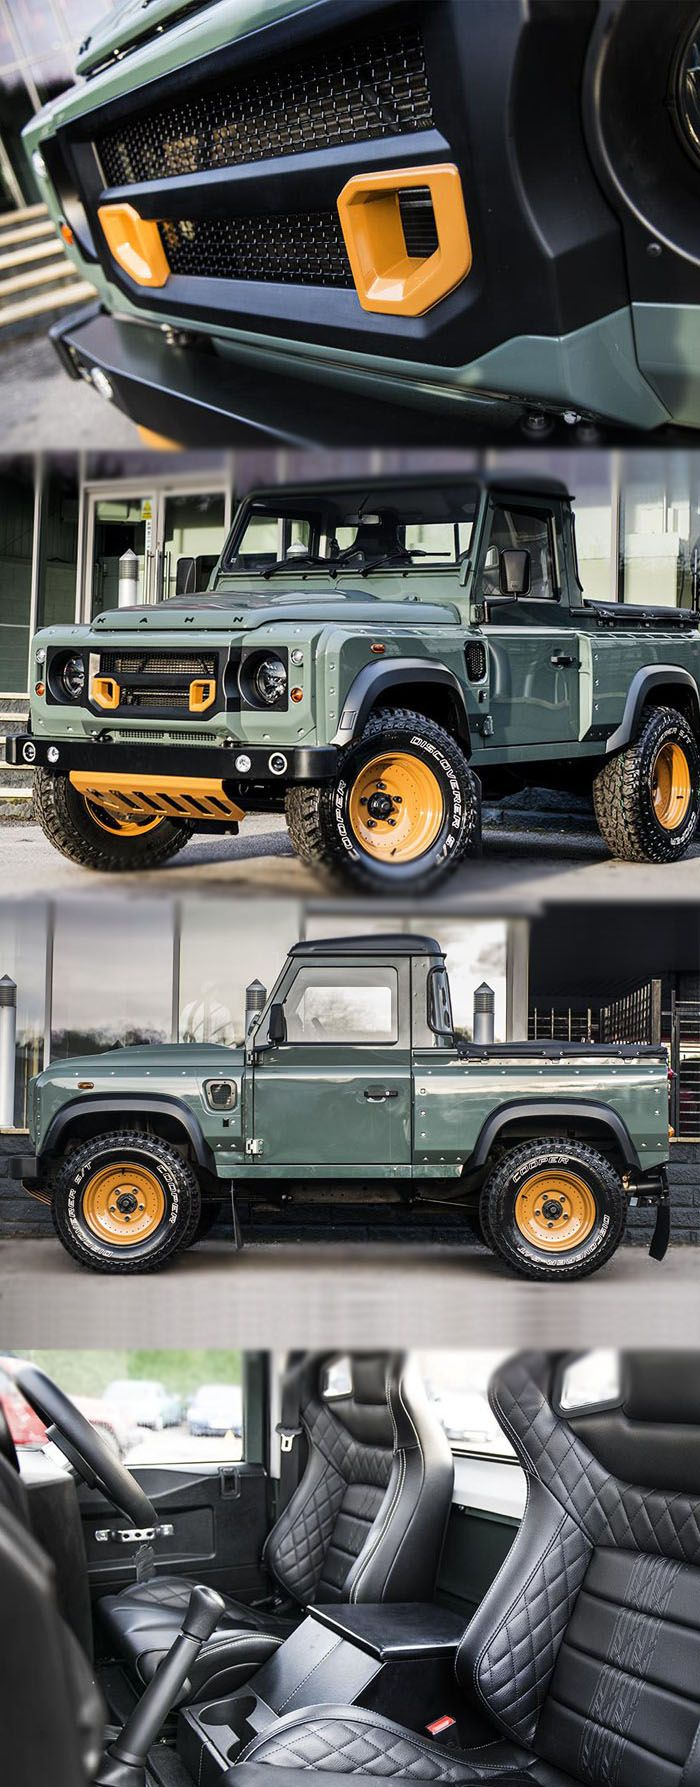 Kahn Design Customised Land Rover Defender Pick-Up For more deitail:https://mbgearboxes.wordpress.com/2016/03/10/kahn-design-customised-land-rover-defender-pick-up/